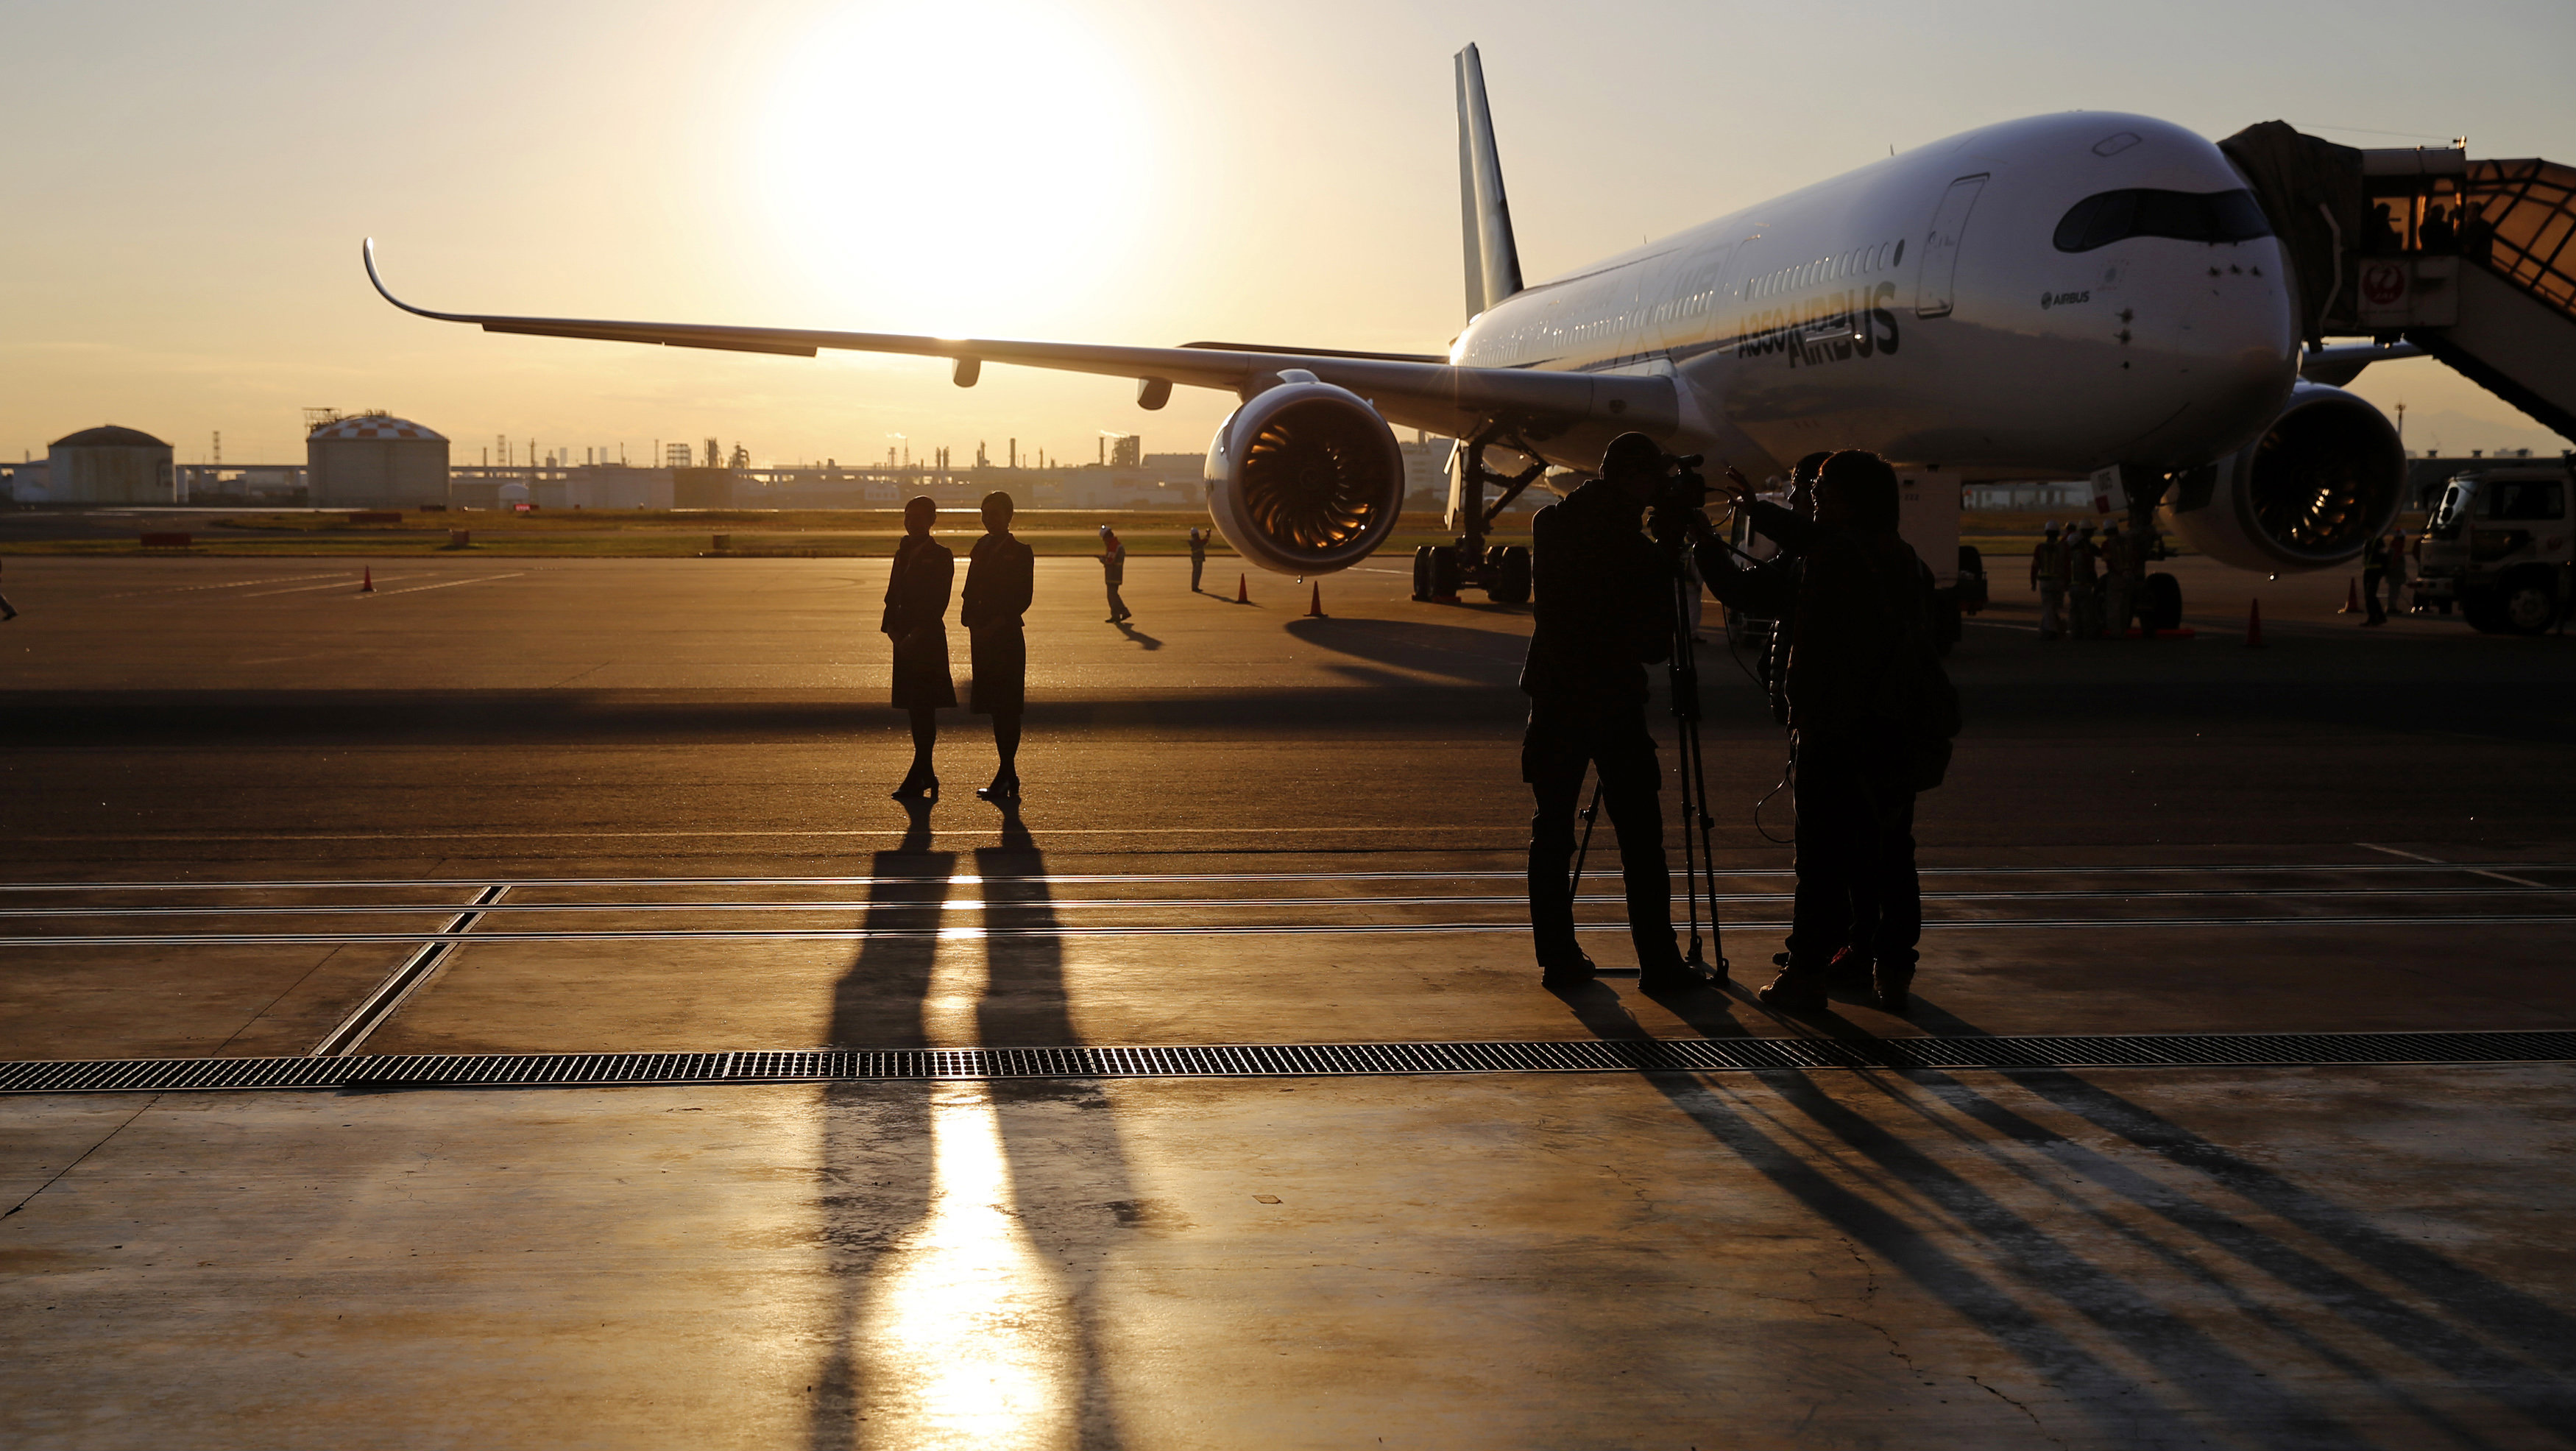 Cabin attendants from Japan Airlines (JAL) pose for the media in front of an Airbus A350 XWB aircraft after it landed for its market survey at Haneda airport in Tokyo November 19, 2014. JAL placed a major order with Airbus for 31 A350 XWBs, which are scheduled for delivery to JAL from 2019, according to Airbus press release. The A350 is Airbus's newest plane.